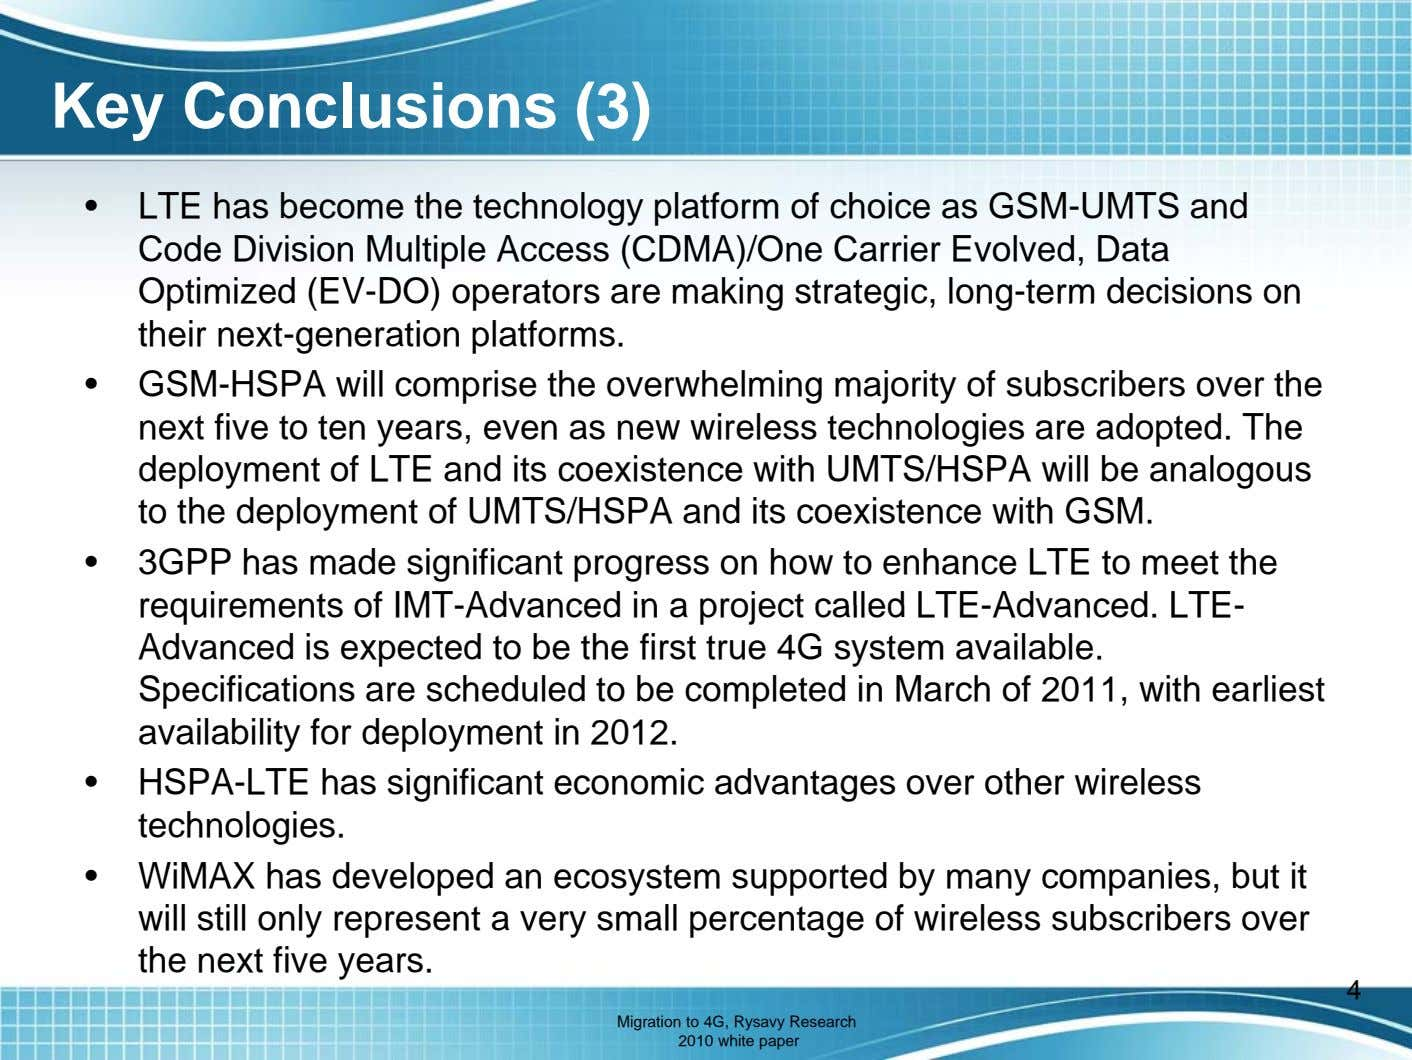 Key Conclusions (3) • LTE has become the technology platform of choice as GSM-UMTS and